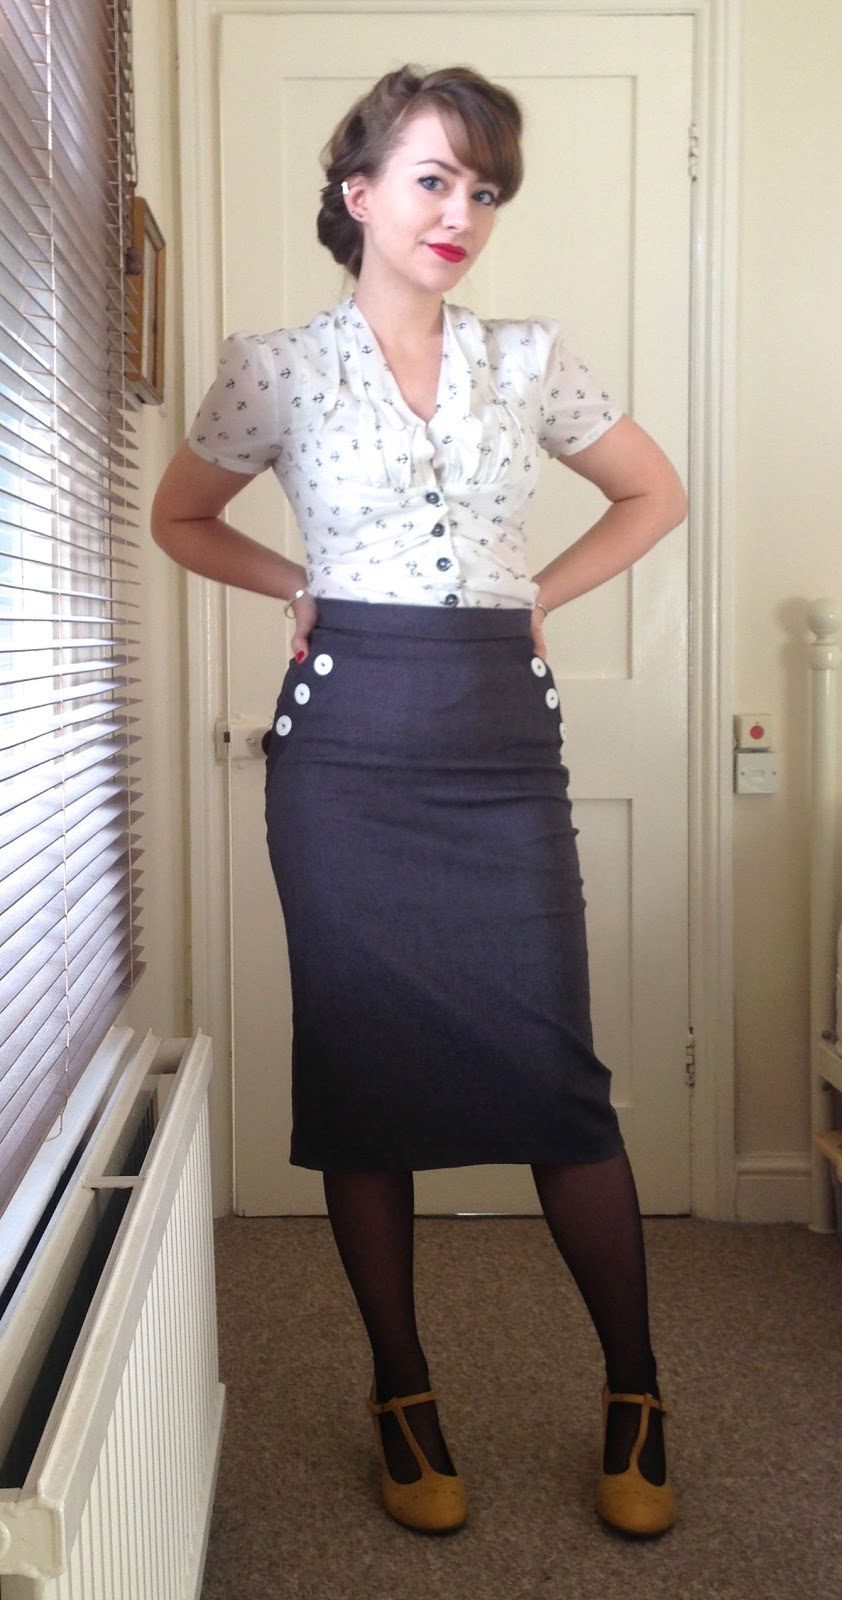 Pencil skirt outfits for going out